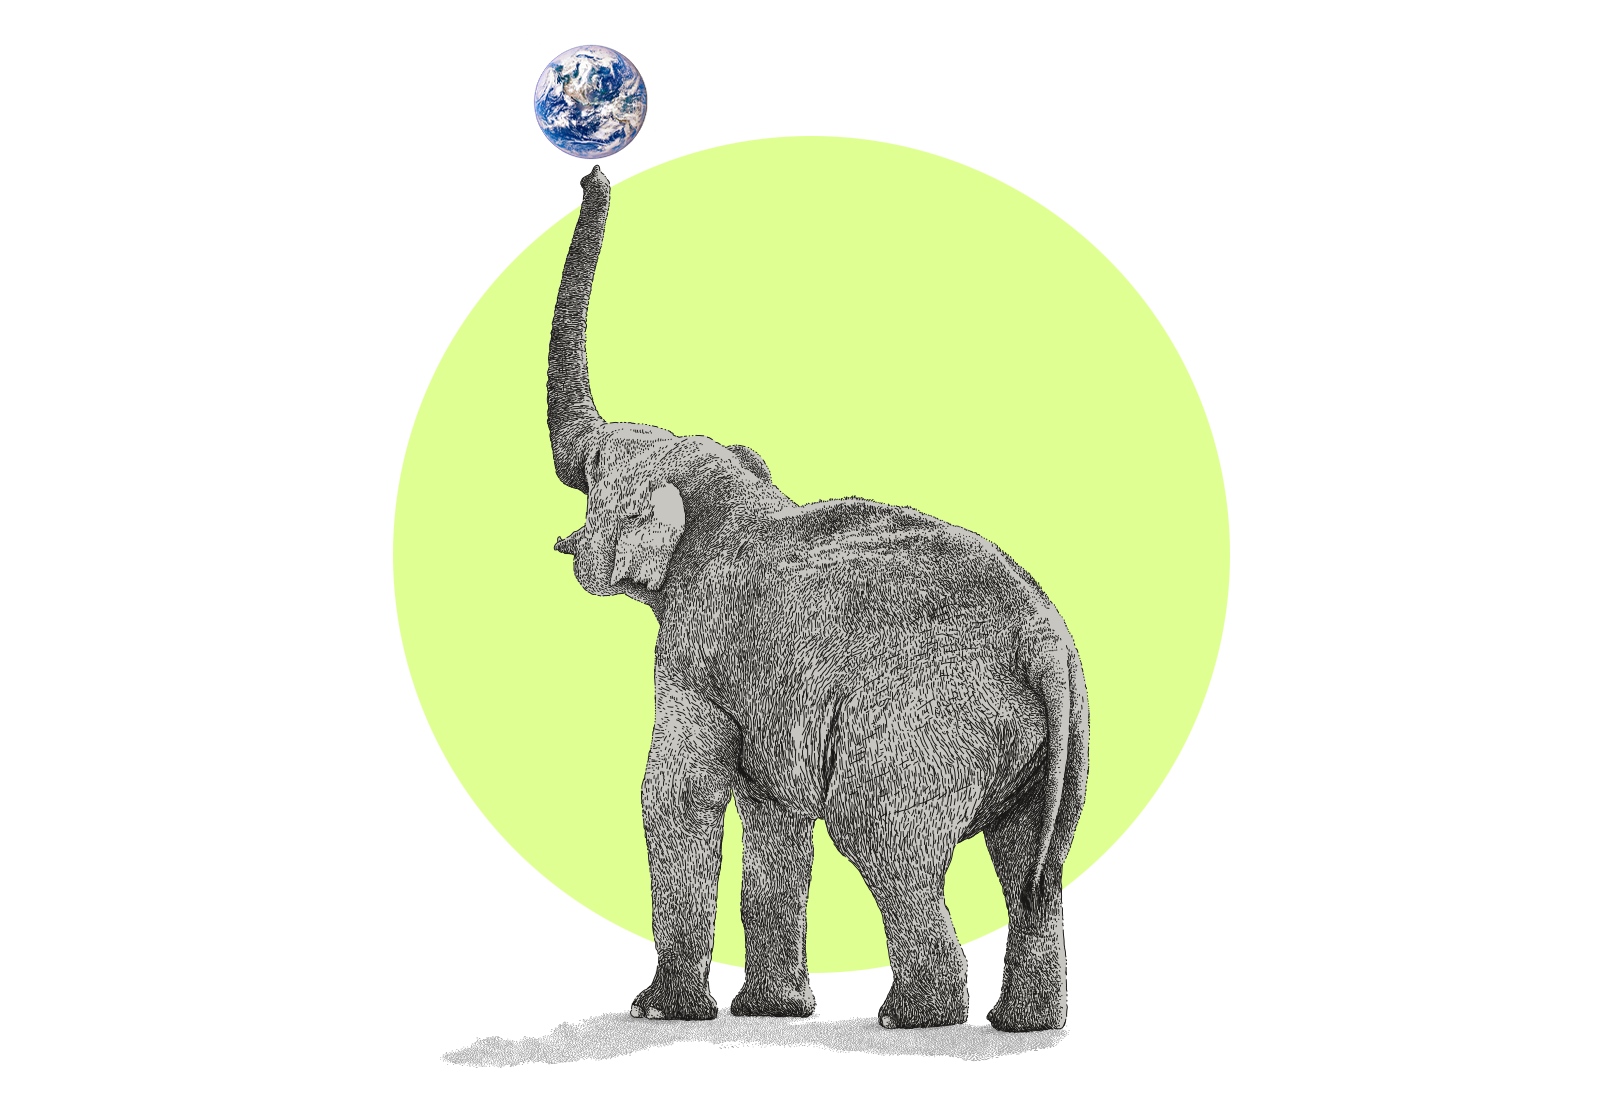 Illustration of an elephant balancing the Earth on the end of its trunk